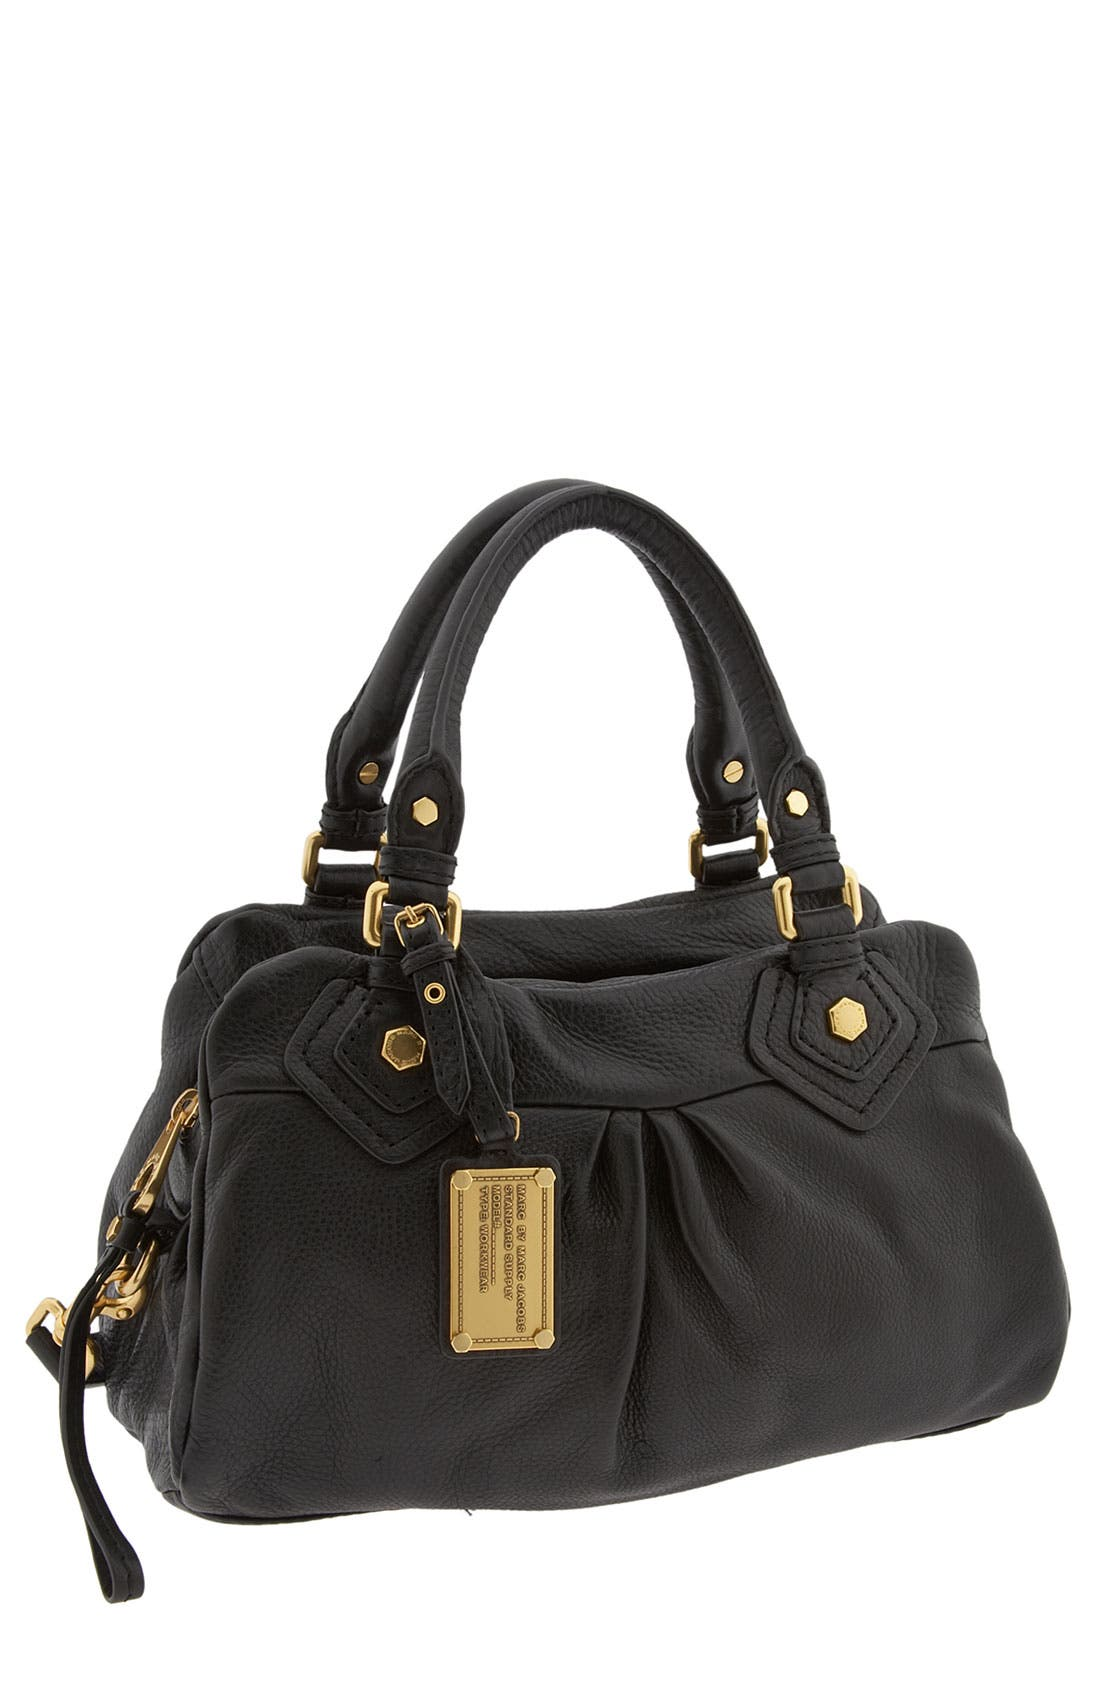 MARC BY MARC JACOBS 'Classic Q - Baby Groovee' Satchel,                             Alternate thumbnail 2, color,                             001